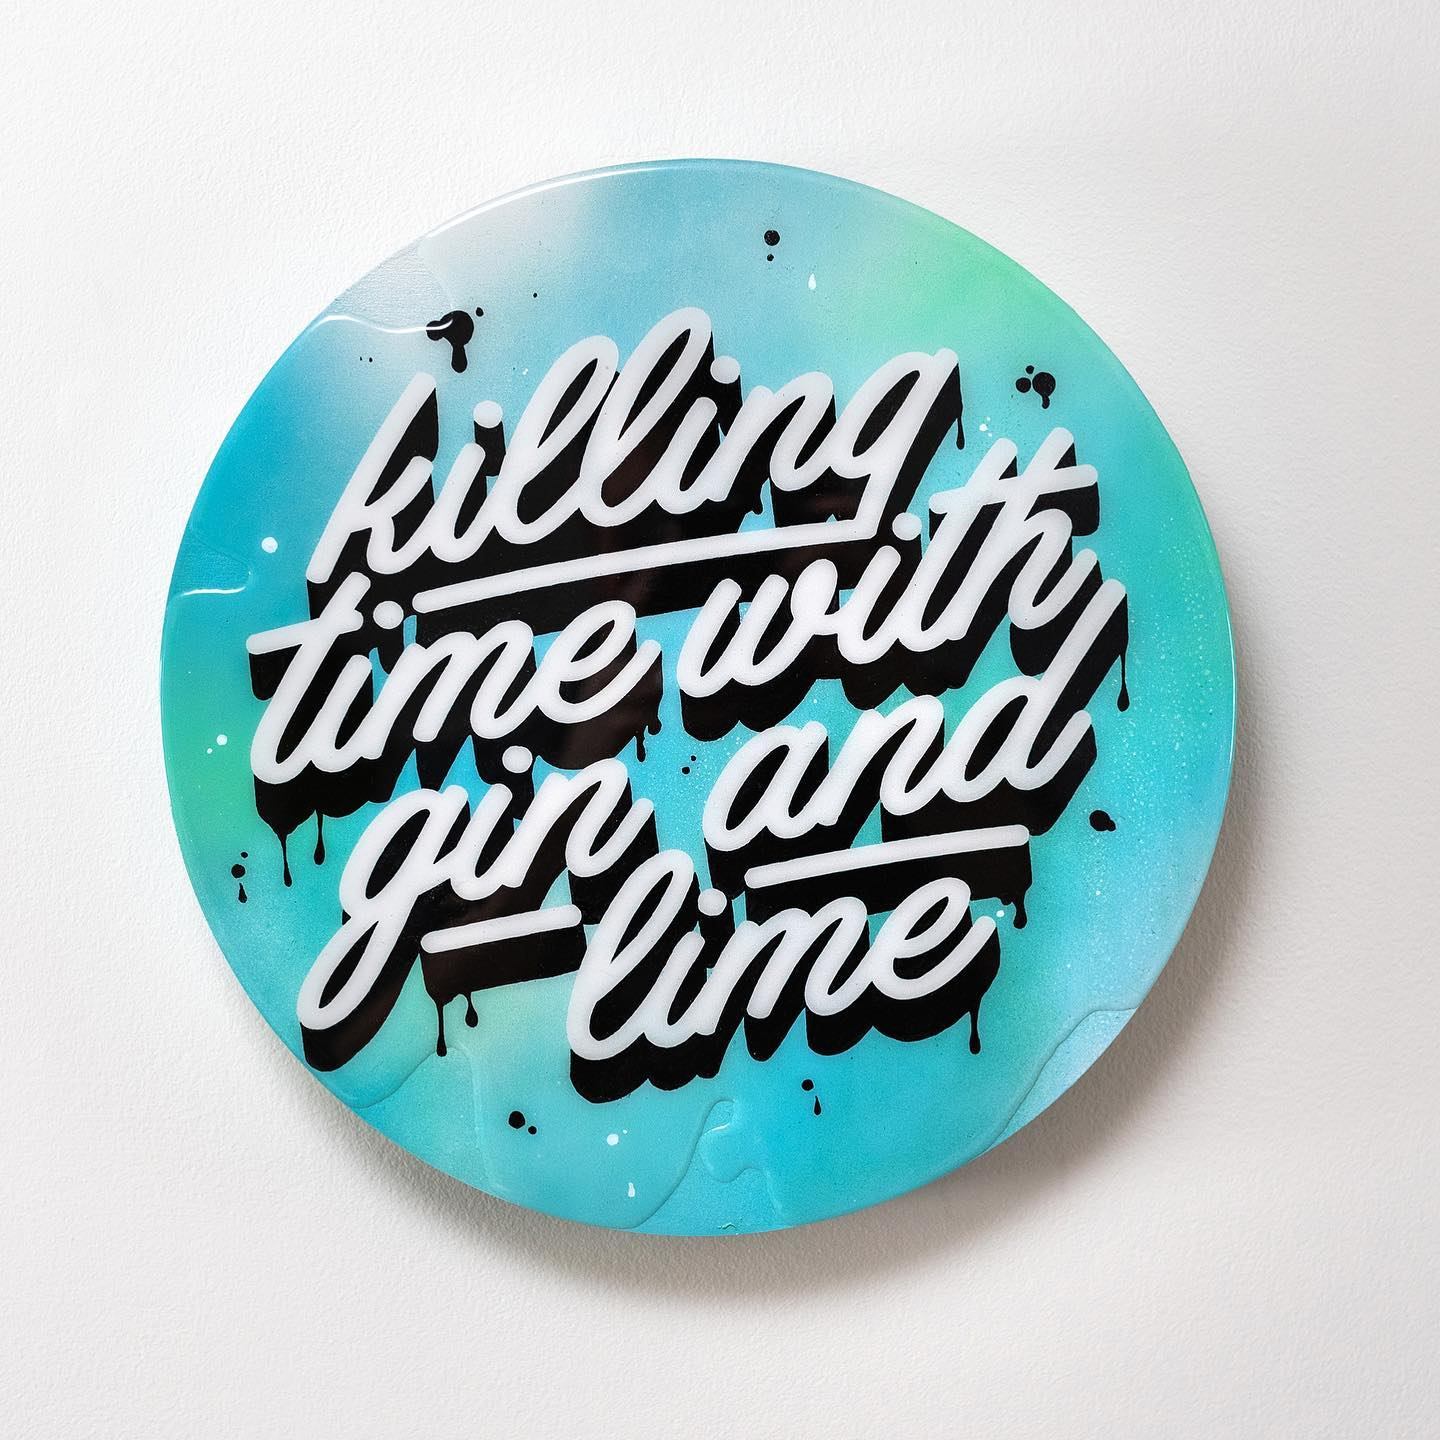 Killing Time - Ryan Labrosse